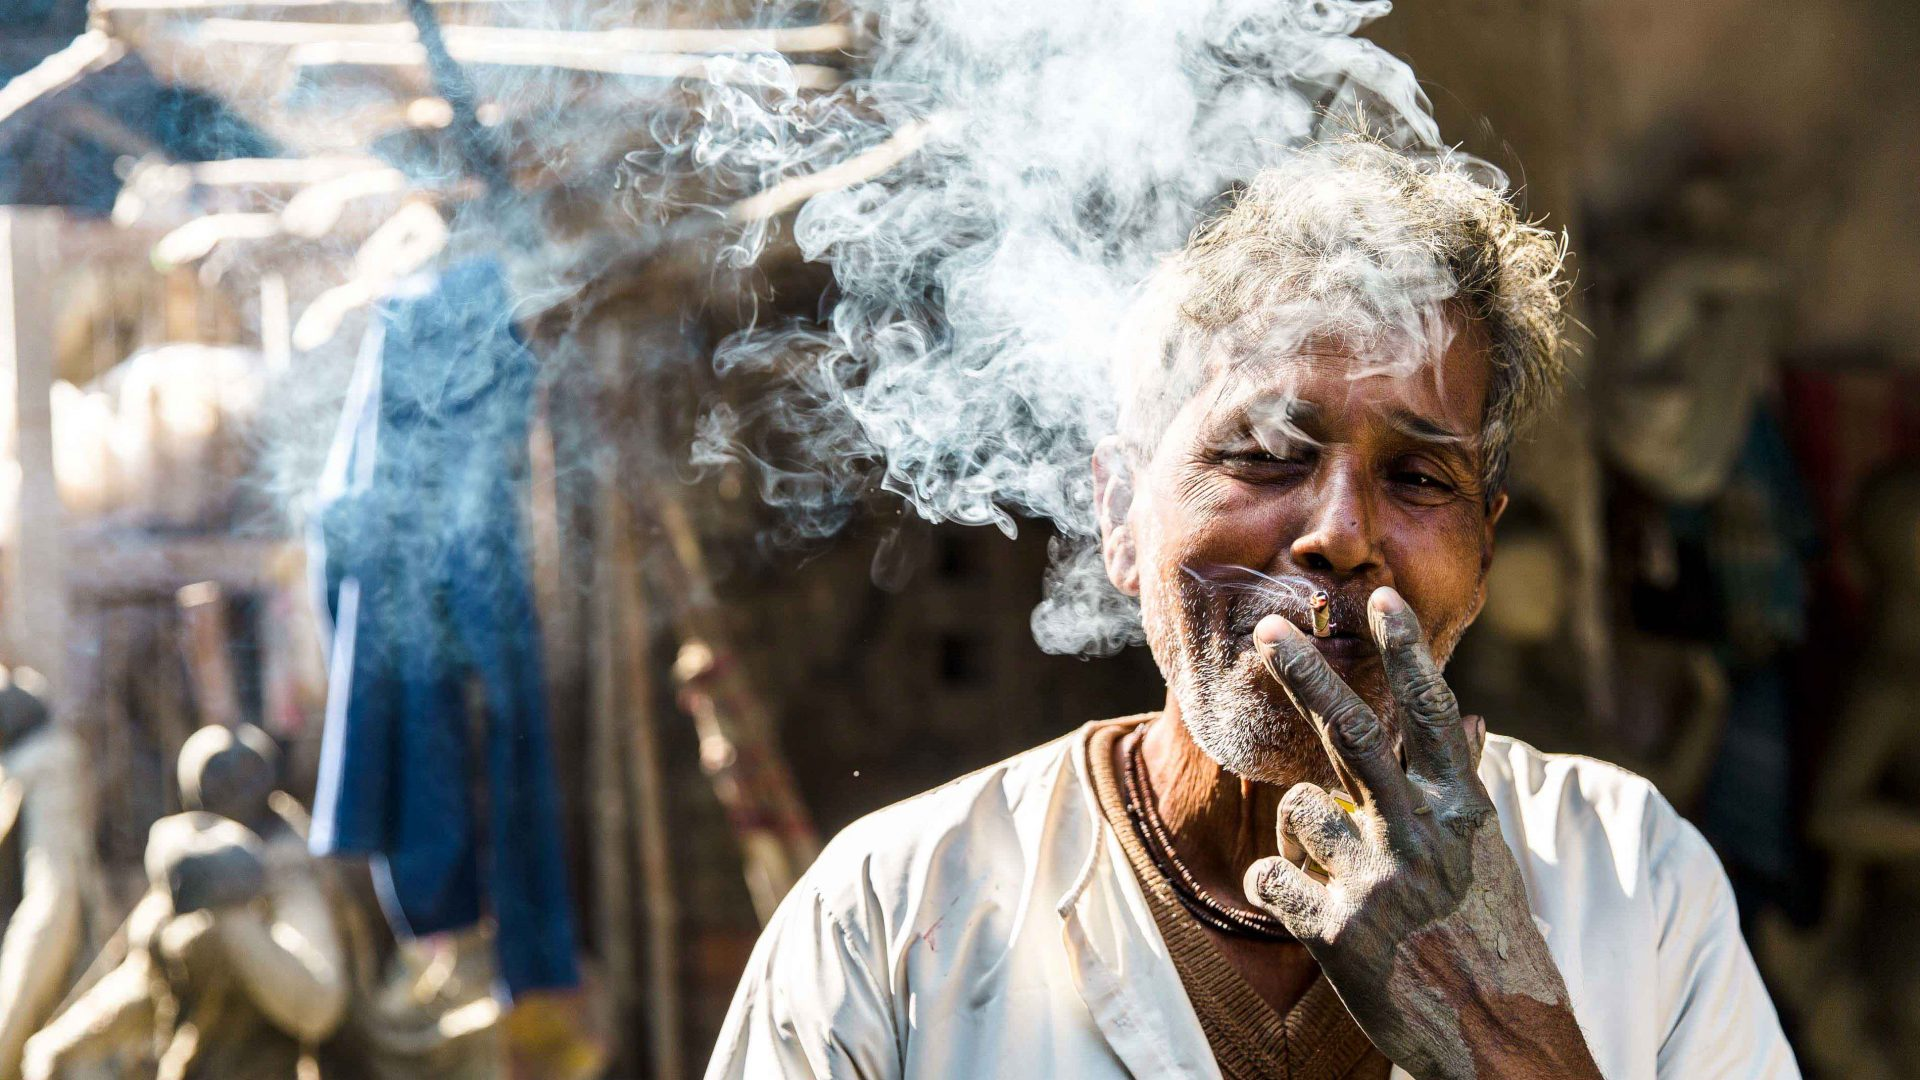 An idol maker takes a cigarette break in the Kumarkali district of Kolkata, an area known for artisans who make Hindu god and goddess statues used at festivals across India.